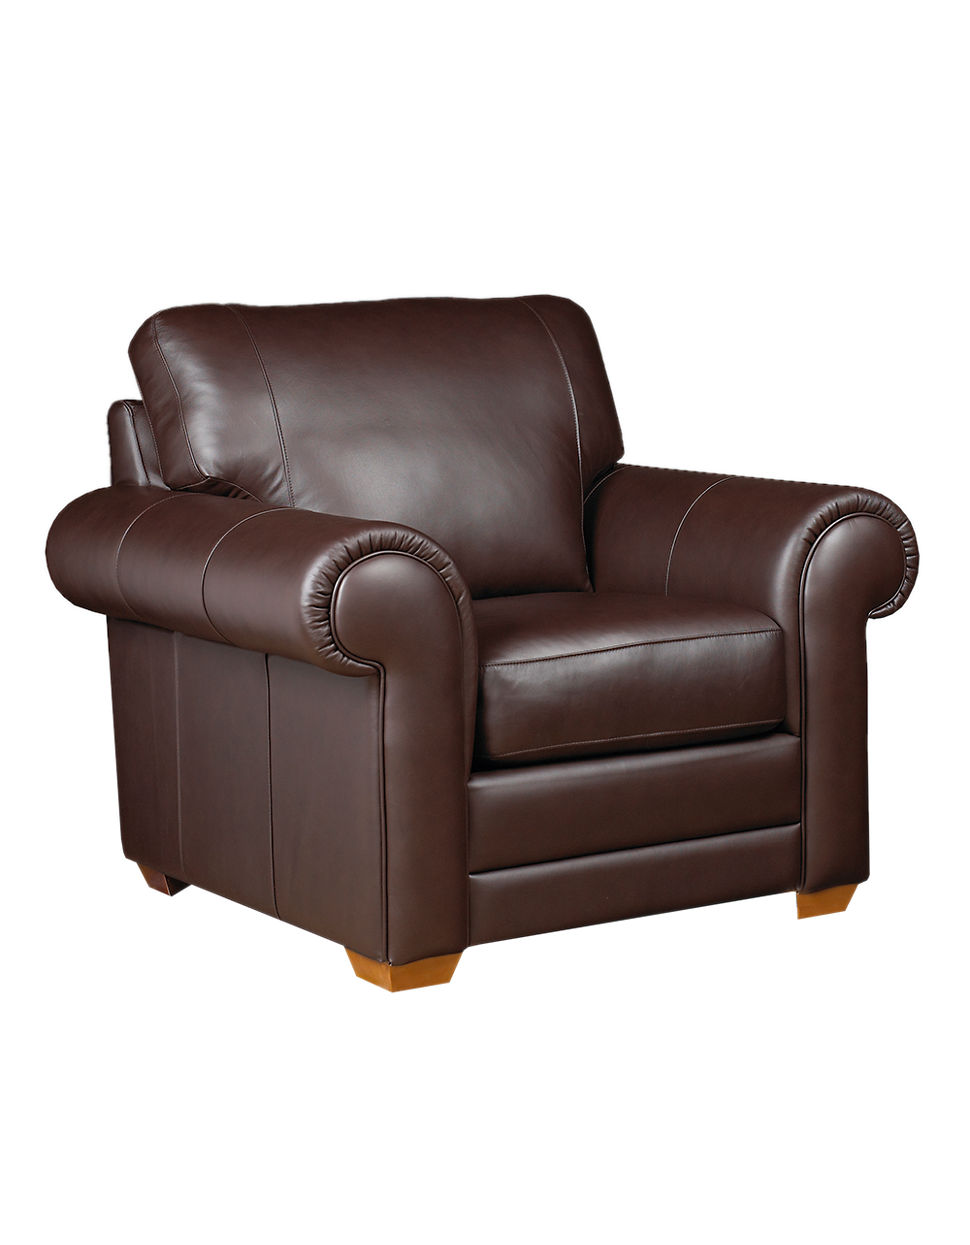 Baby cribs kijiji calgary - Lake Como Leather Chair With Rolled Arms